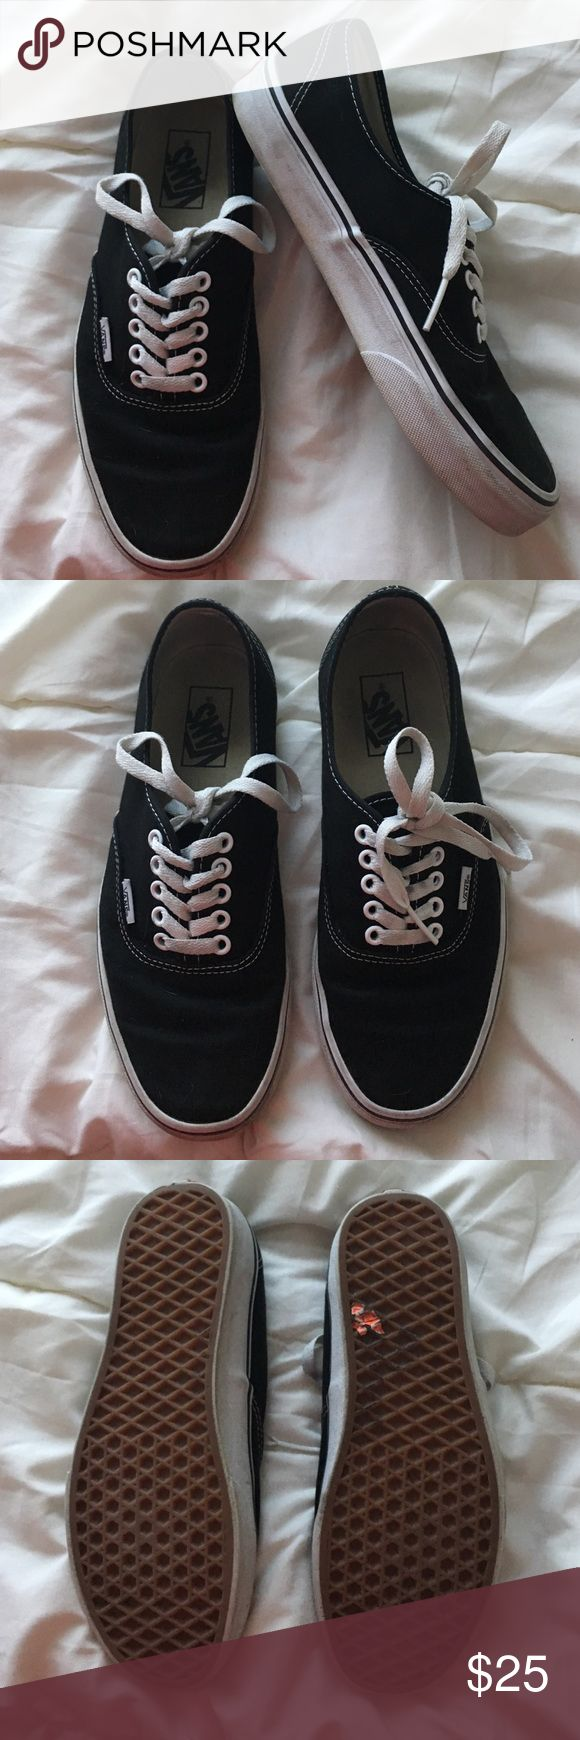 Black Vans Authentic Skate Shoe Black laced vans women's size 9 men's size 7.5 Vans Shoes Sneakers